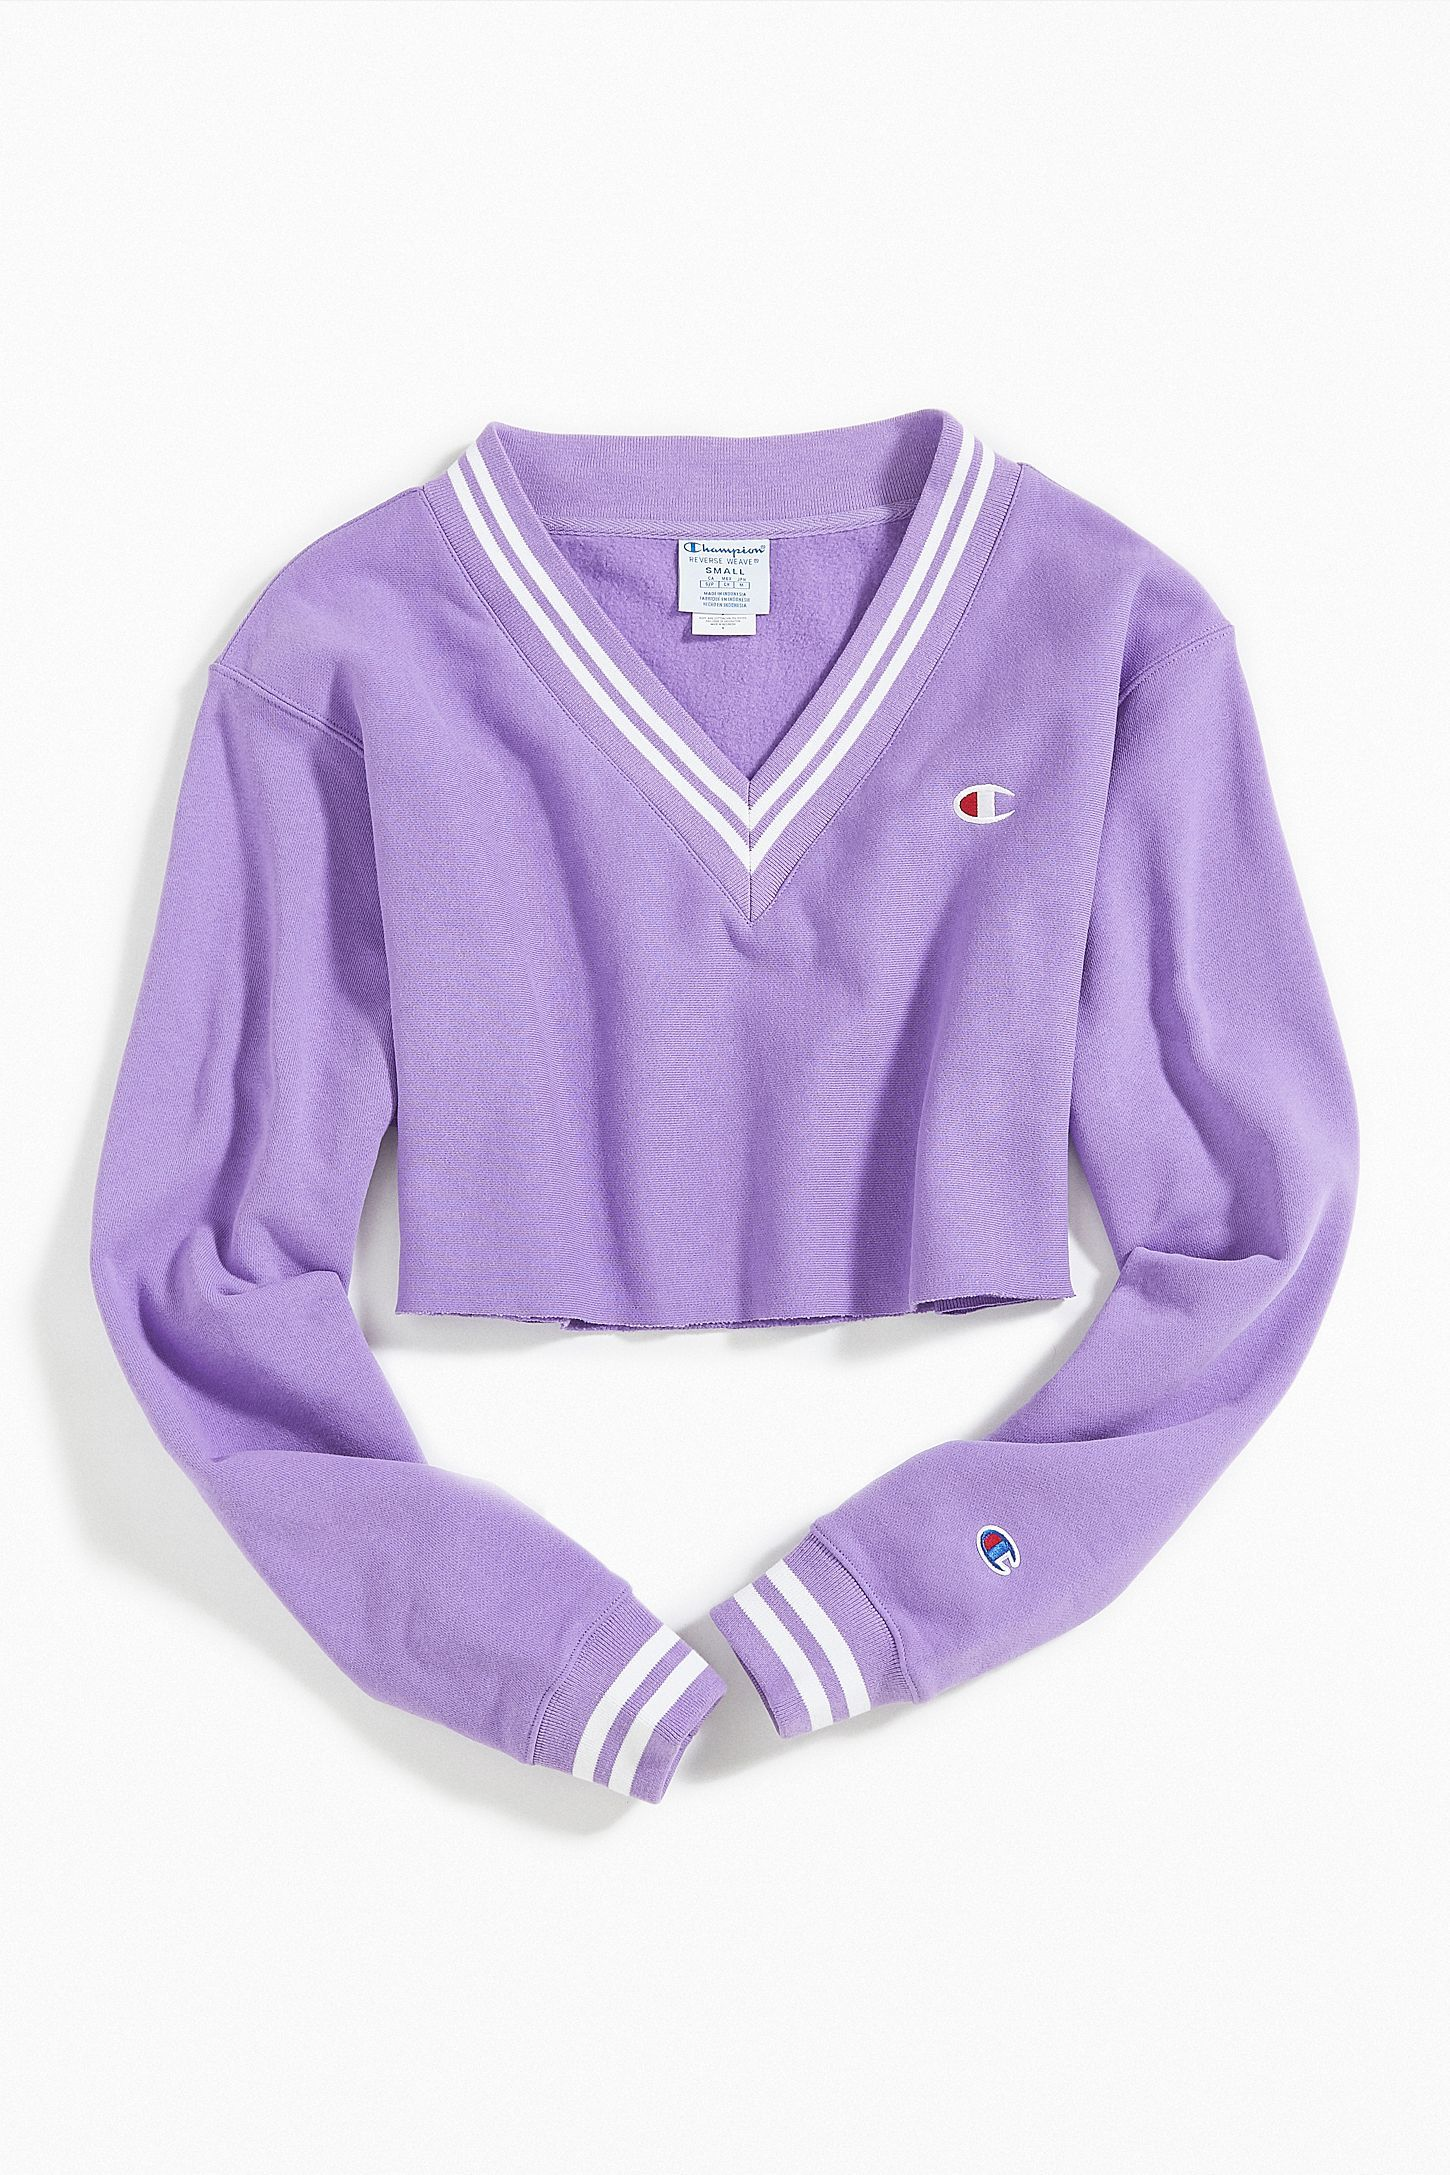 Slide View 5 Champion Uo Exclusive Oversized V Neck Cropped Sweatshirt Kawaii Fashion Outfits Cute Casual Outfits Champion Clothing [ 2175 x 1450 Pixel ]